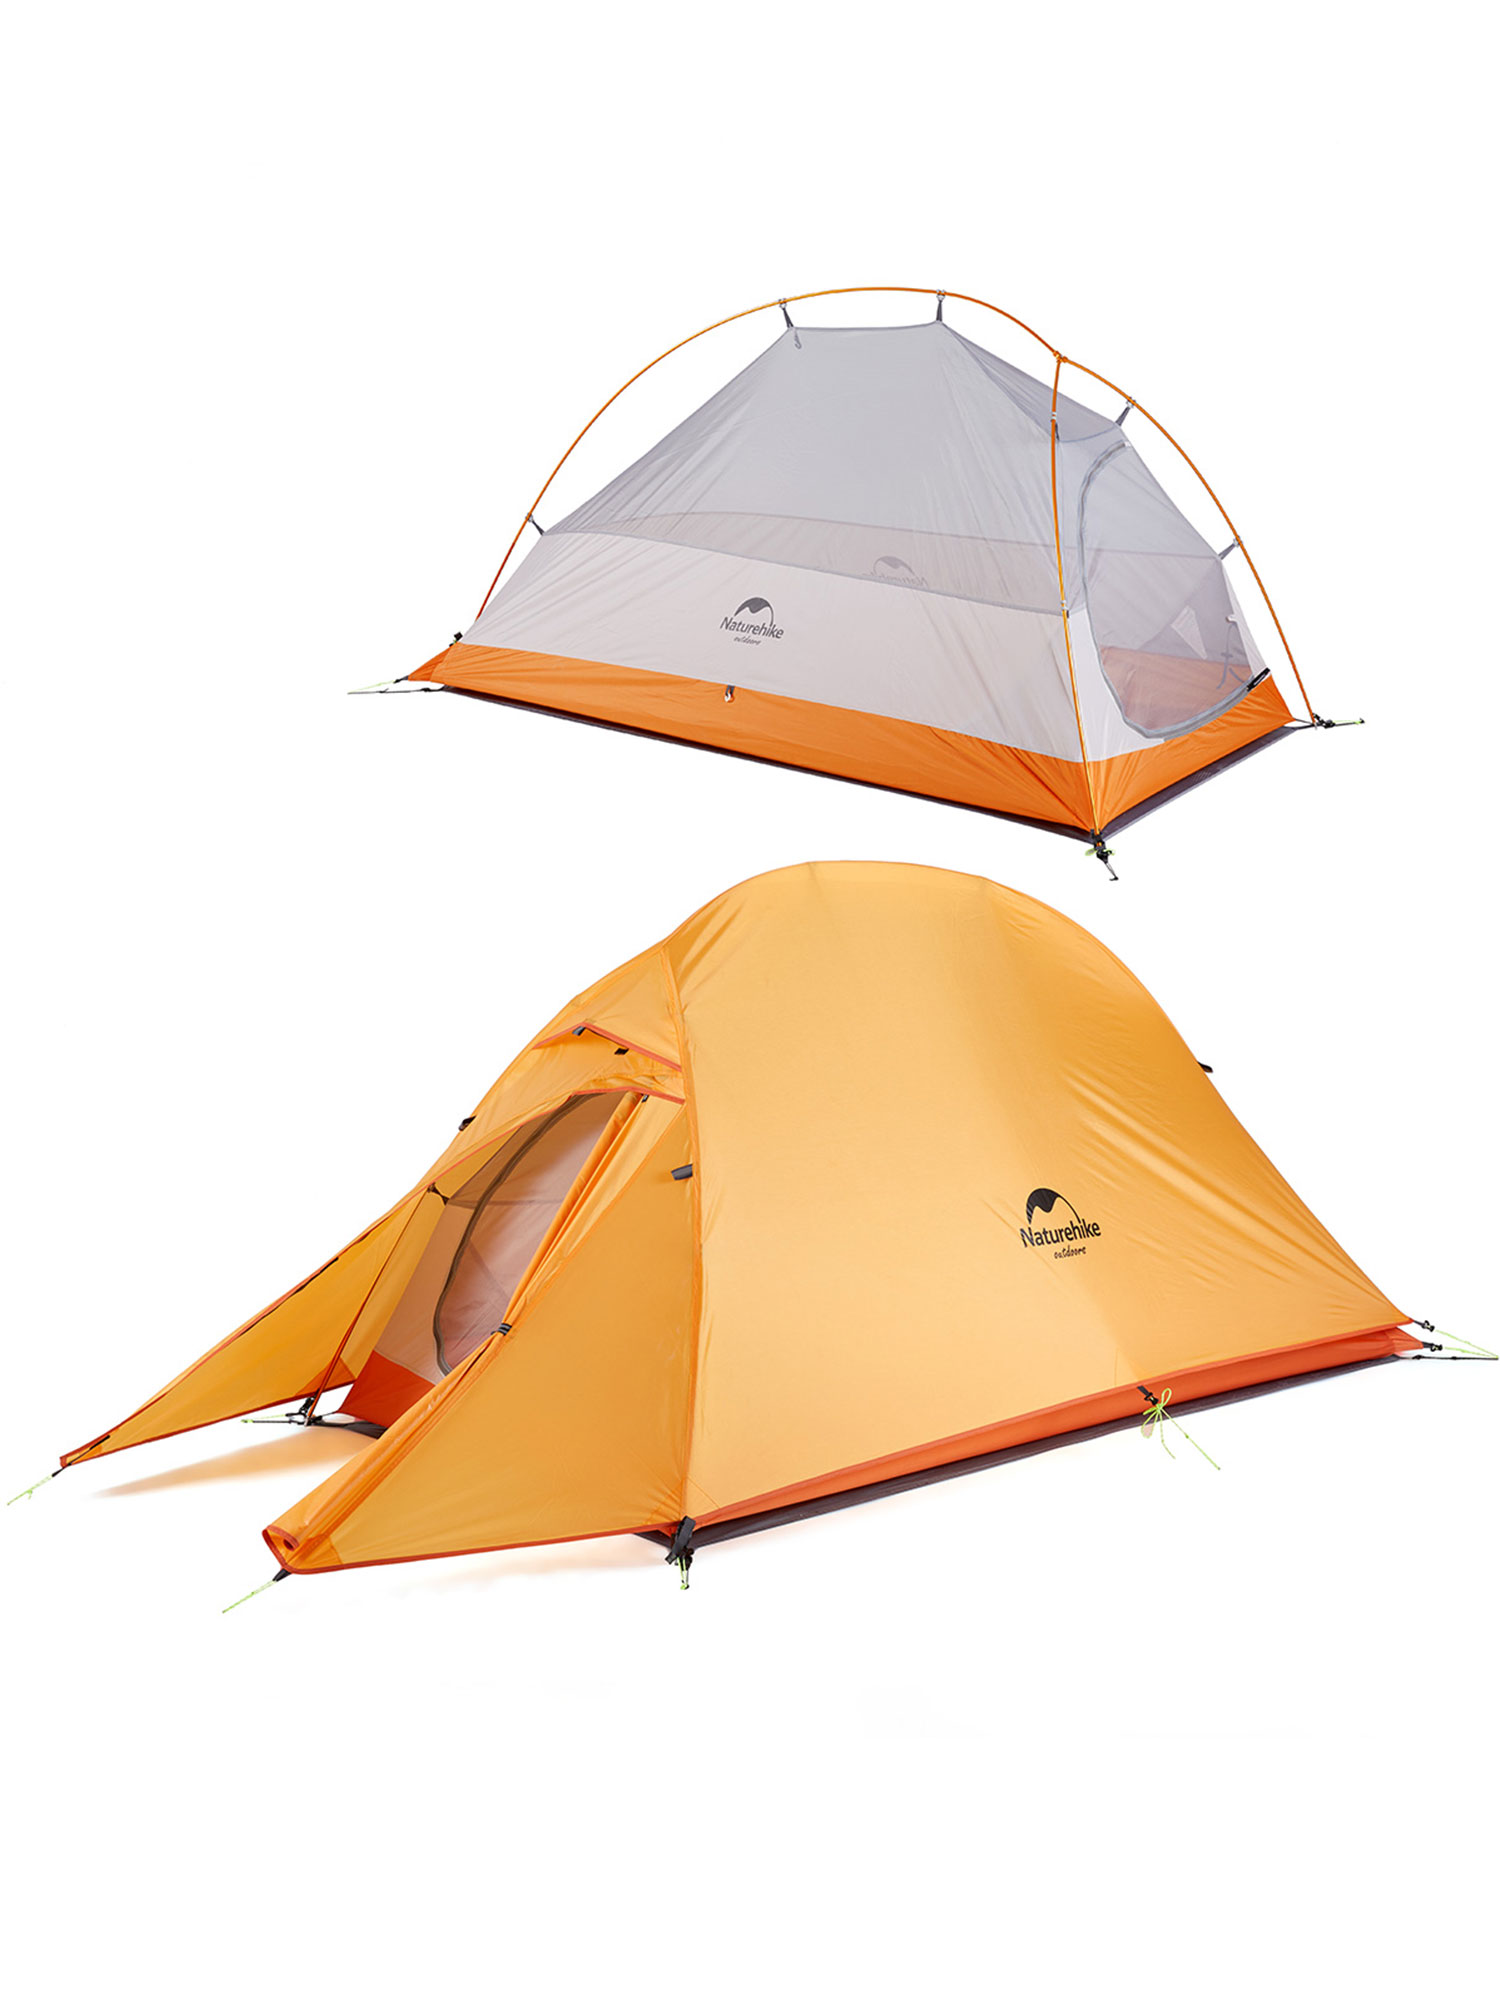 Waterproof Double Layer Backpacking Tent 4 Seasons Naturehike Cloud-up 2 Ultralight Camping Tent for 2 Persons